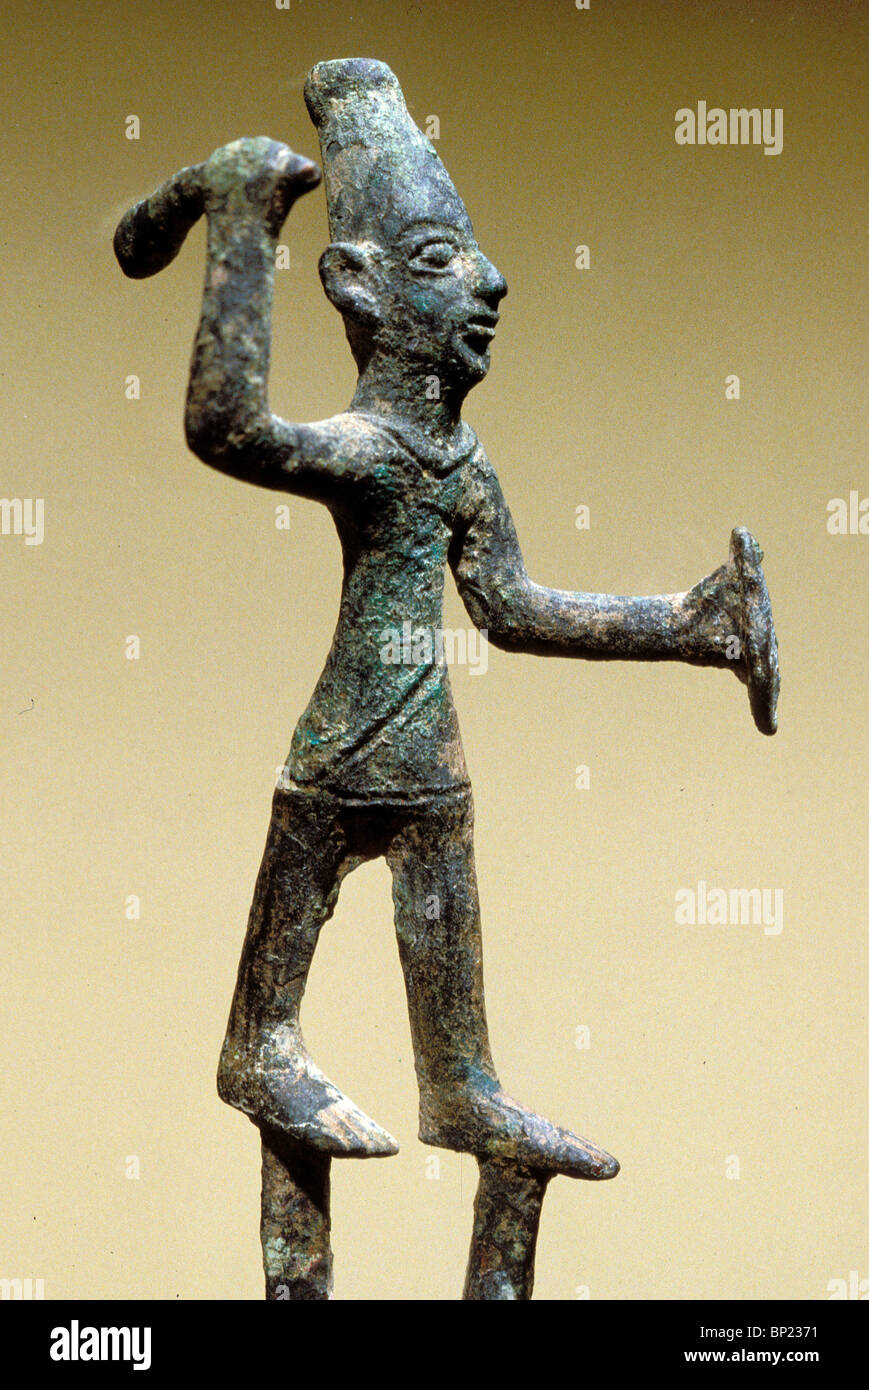 135. BRONZE FIGURINE OF BAAL, CNAANITE GOD OF WAR - Stock Image